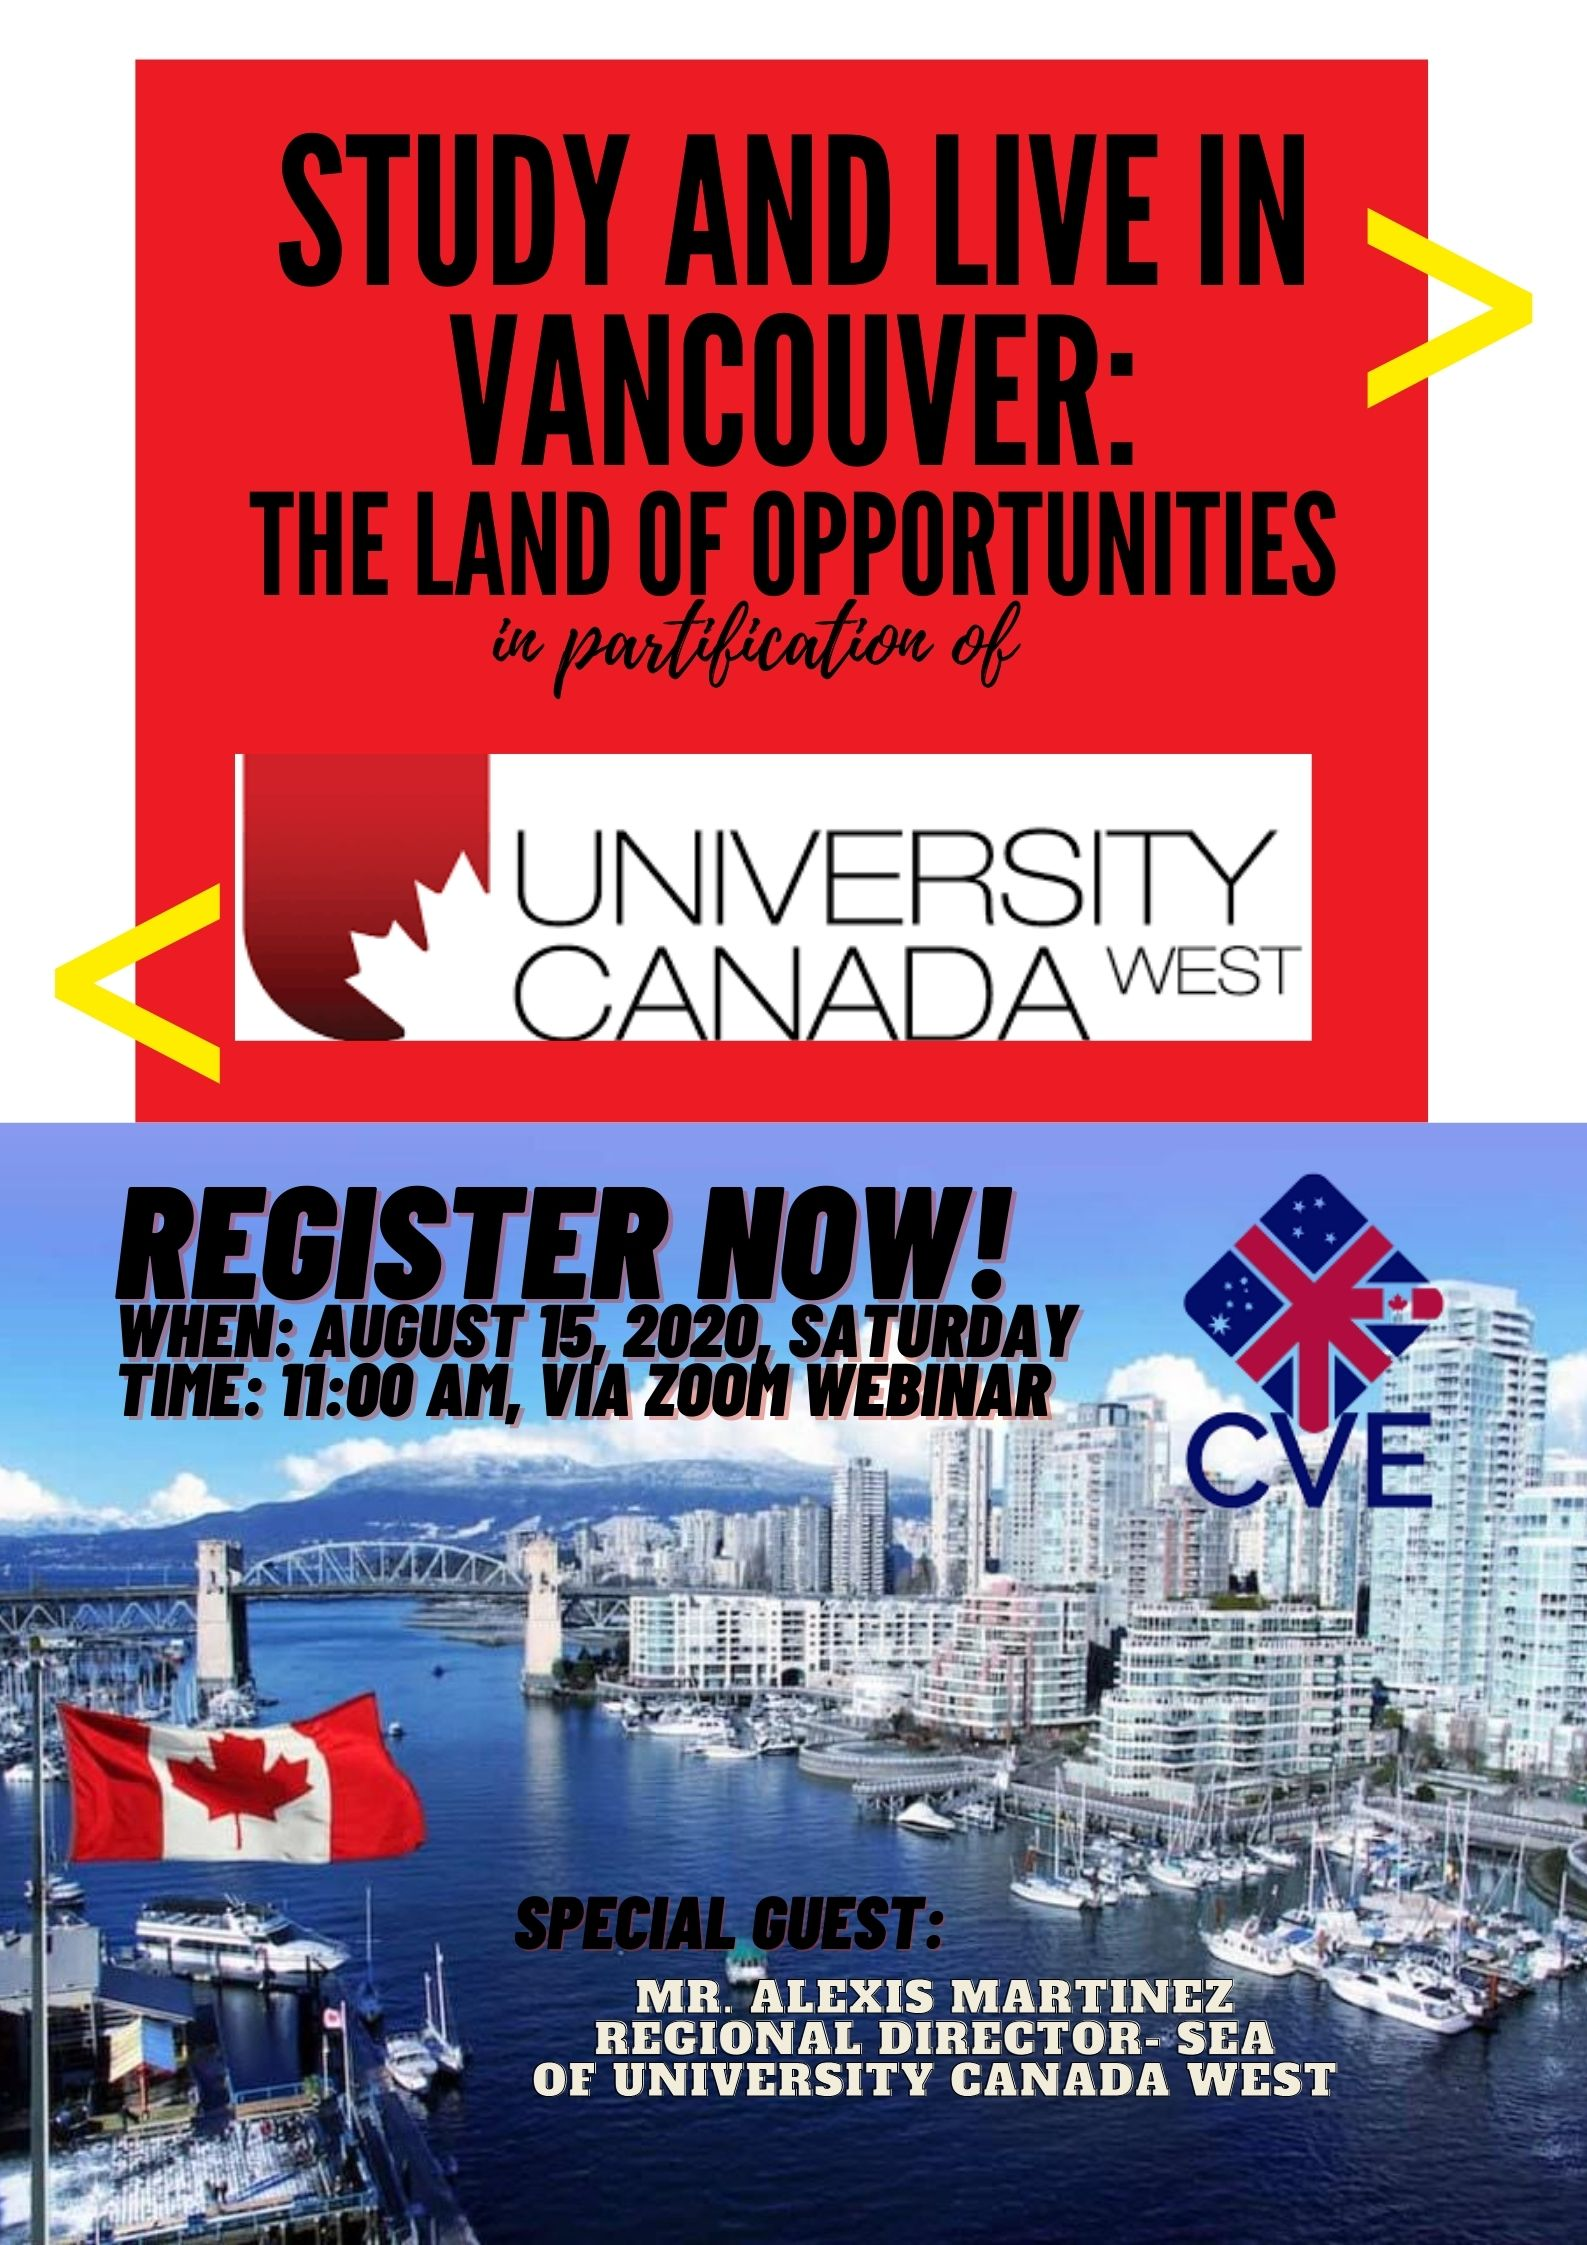 STUDY AND LIVE IN VANCOUVER!